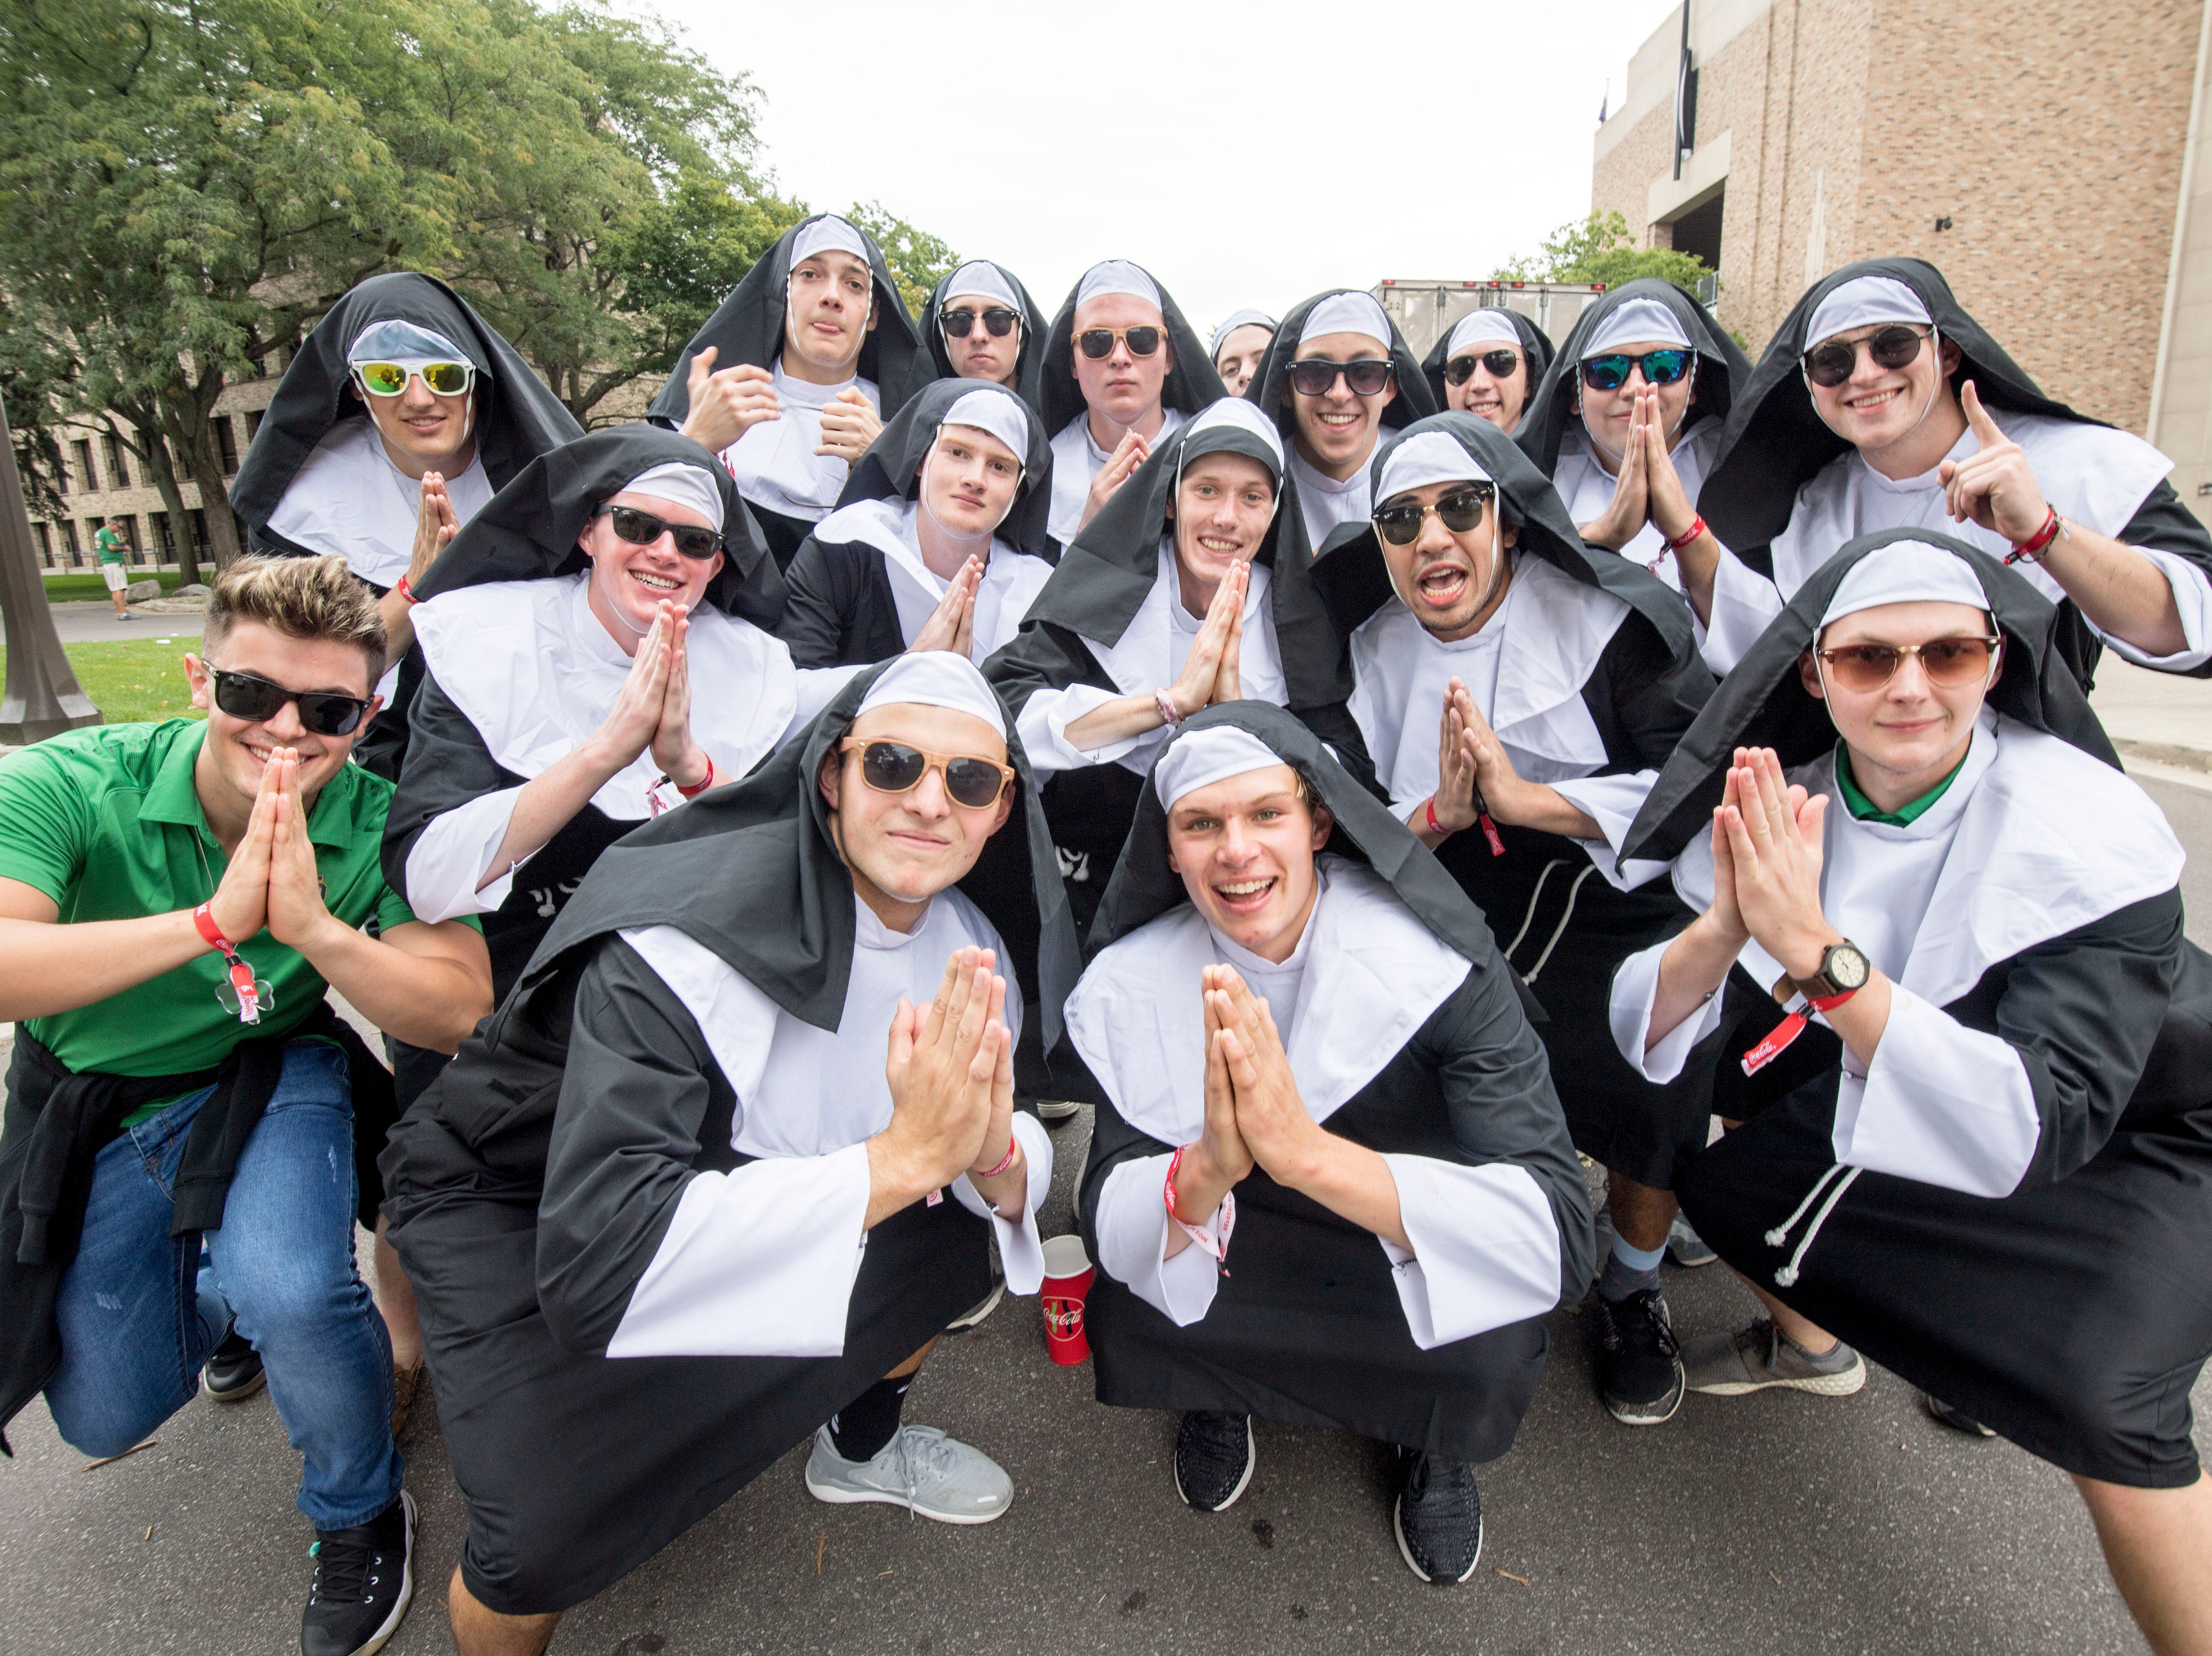 Week 1: Notre Dame students dressed as nuns pose for a photo before the game against the Michigan Wolverines at Notre Dame Stadium.